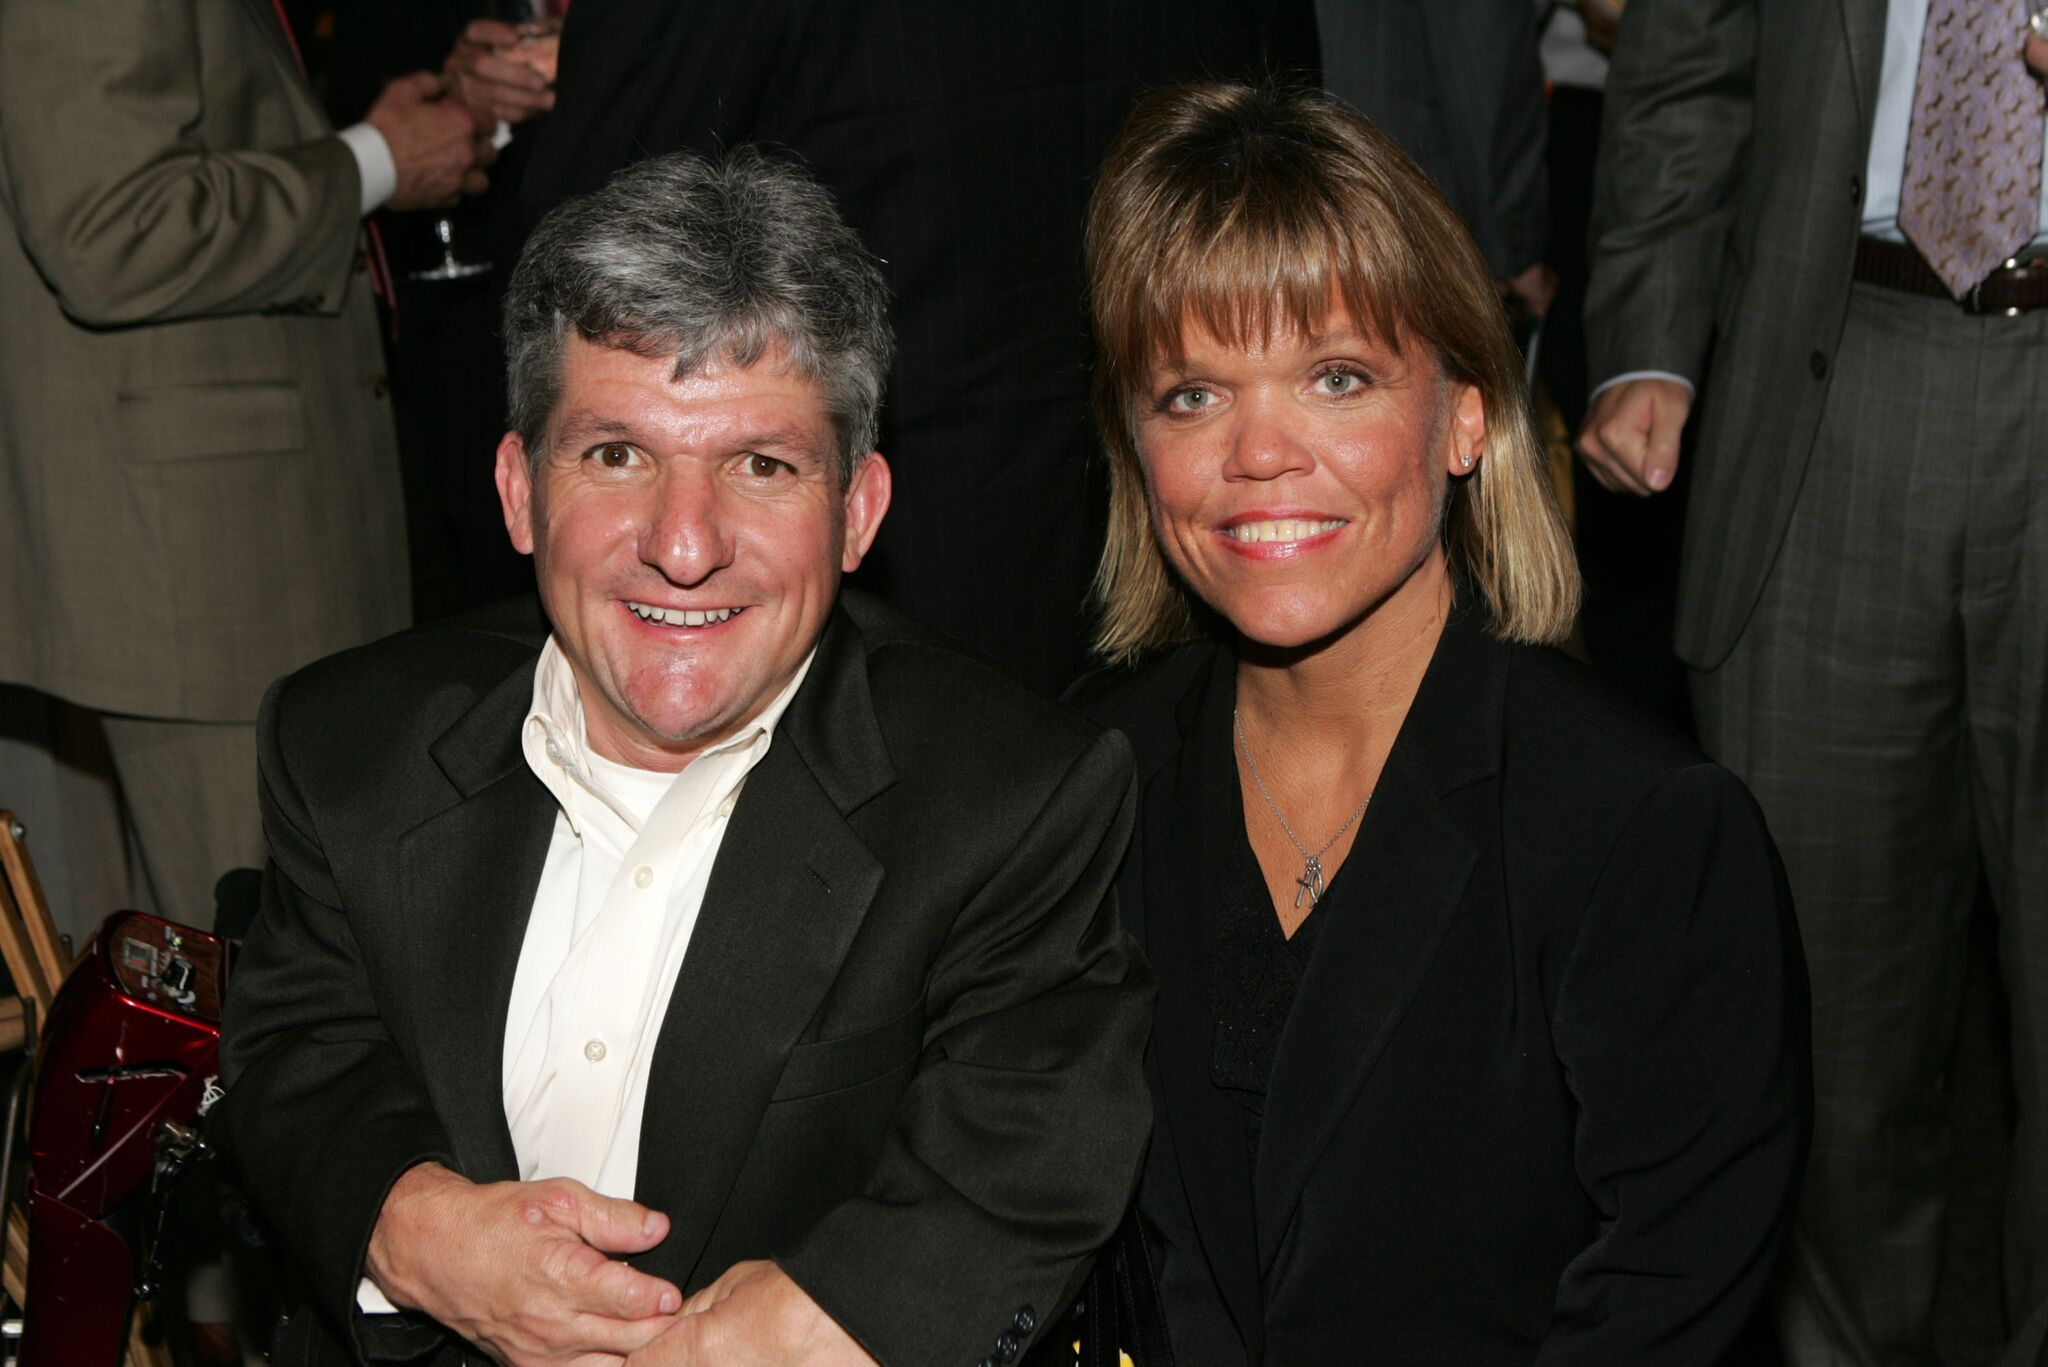 Matt and Amy Roloff attend the Discovery Upfront Presentation NY - Talent Images | Getty Images / Global Images Ukraine